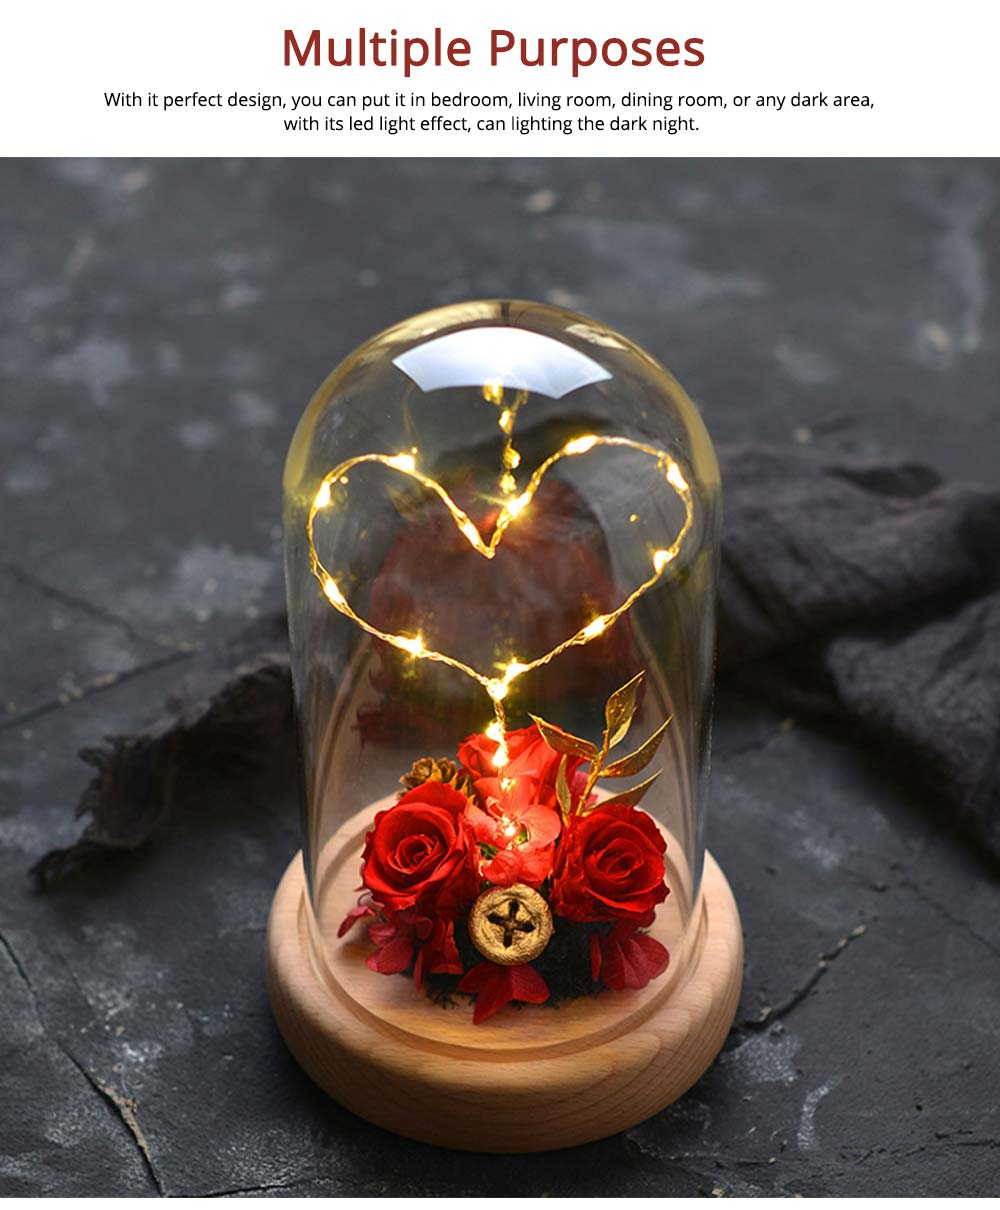 Imitation Rose Preserved Fresh Flower with LED Light Glass Cover, Great Valentine's Day Gift 6